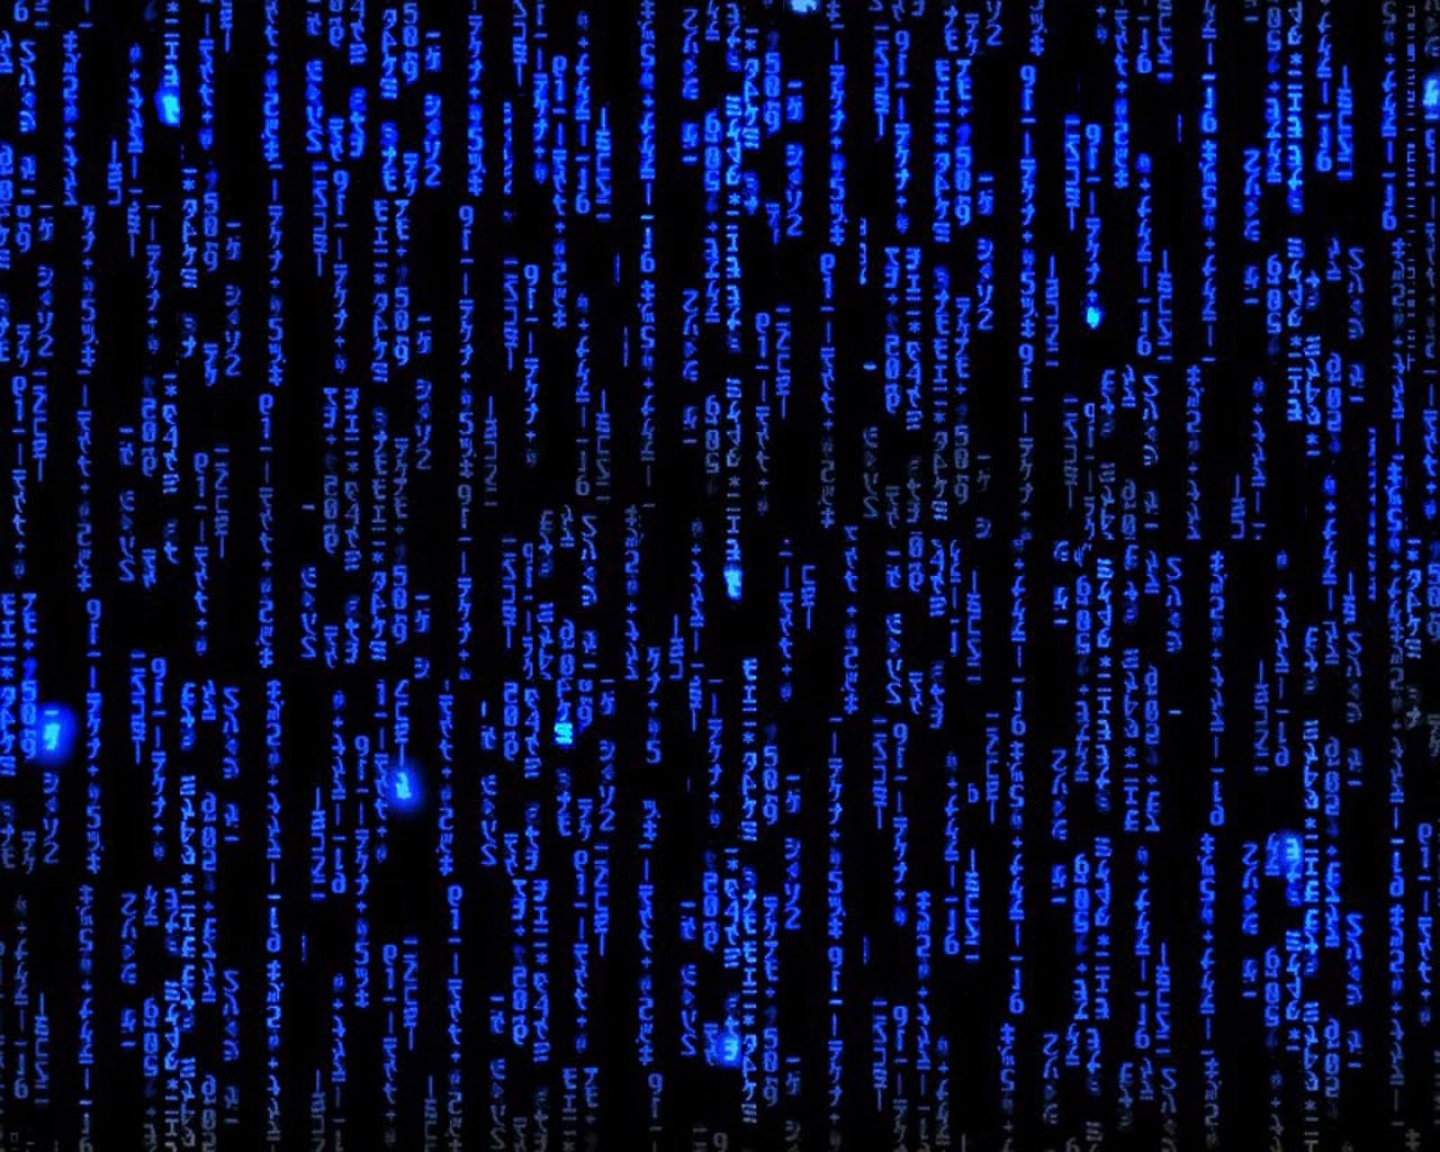 Blue Matrix Wallpaper ~ Sdeerwallpaper